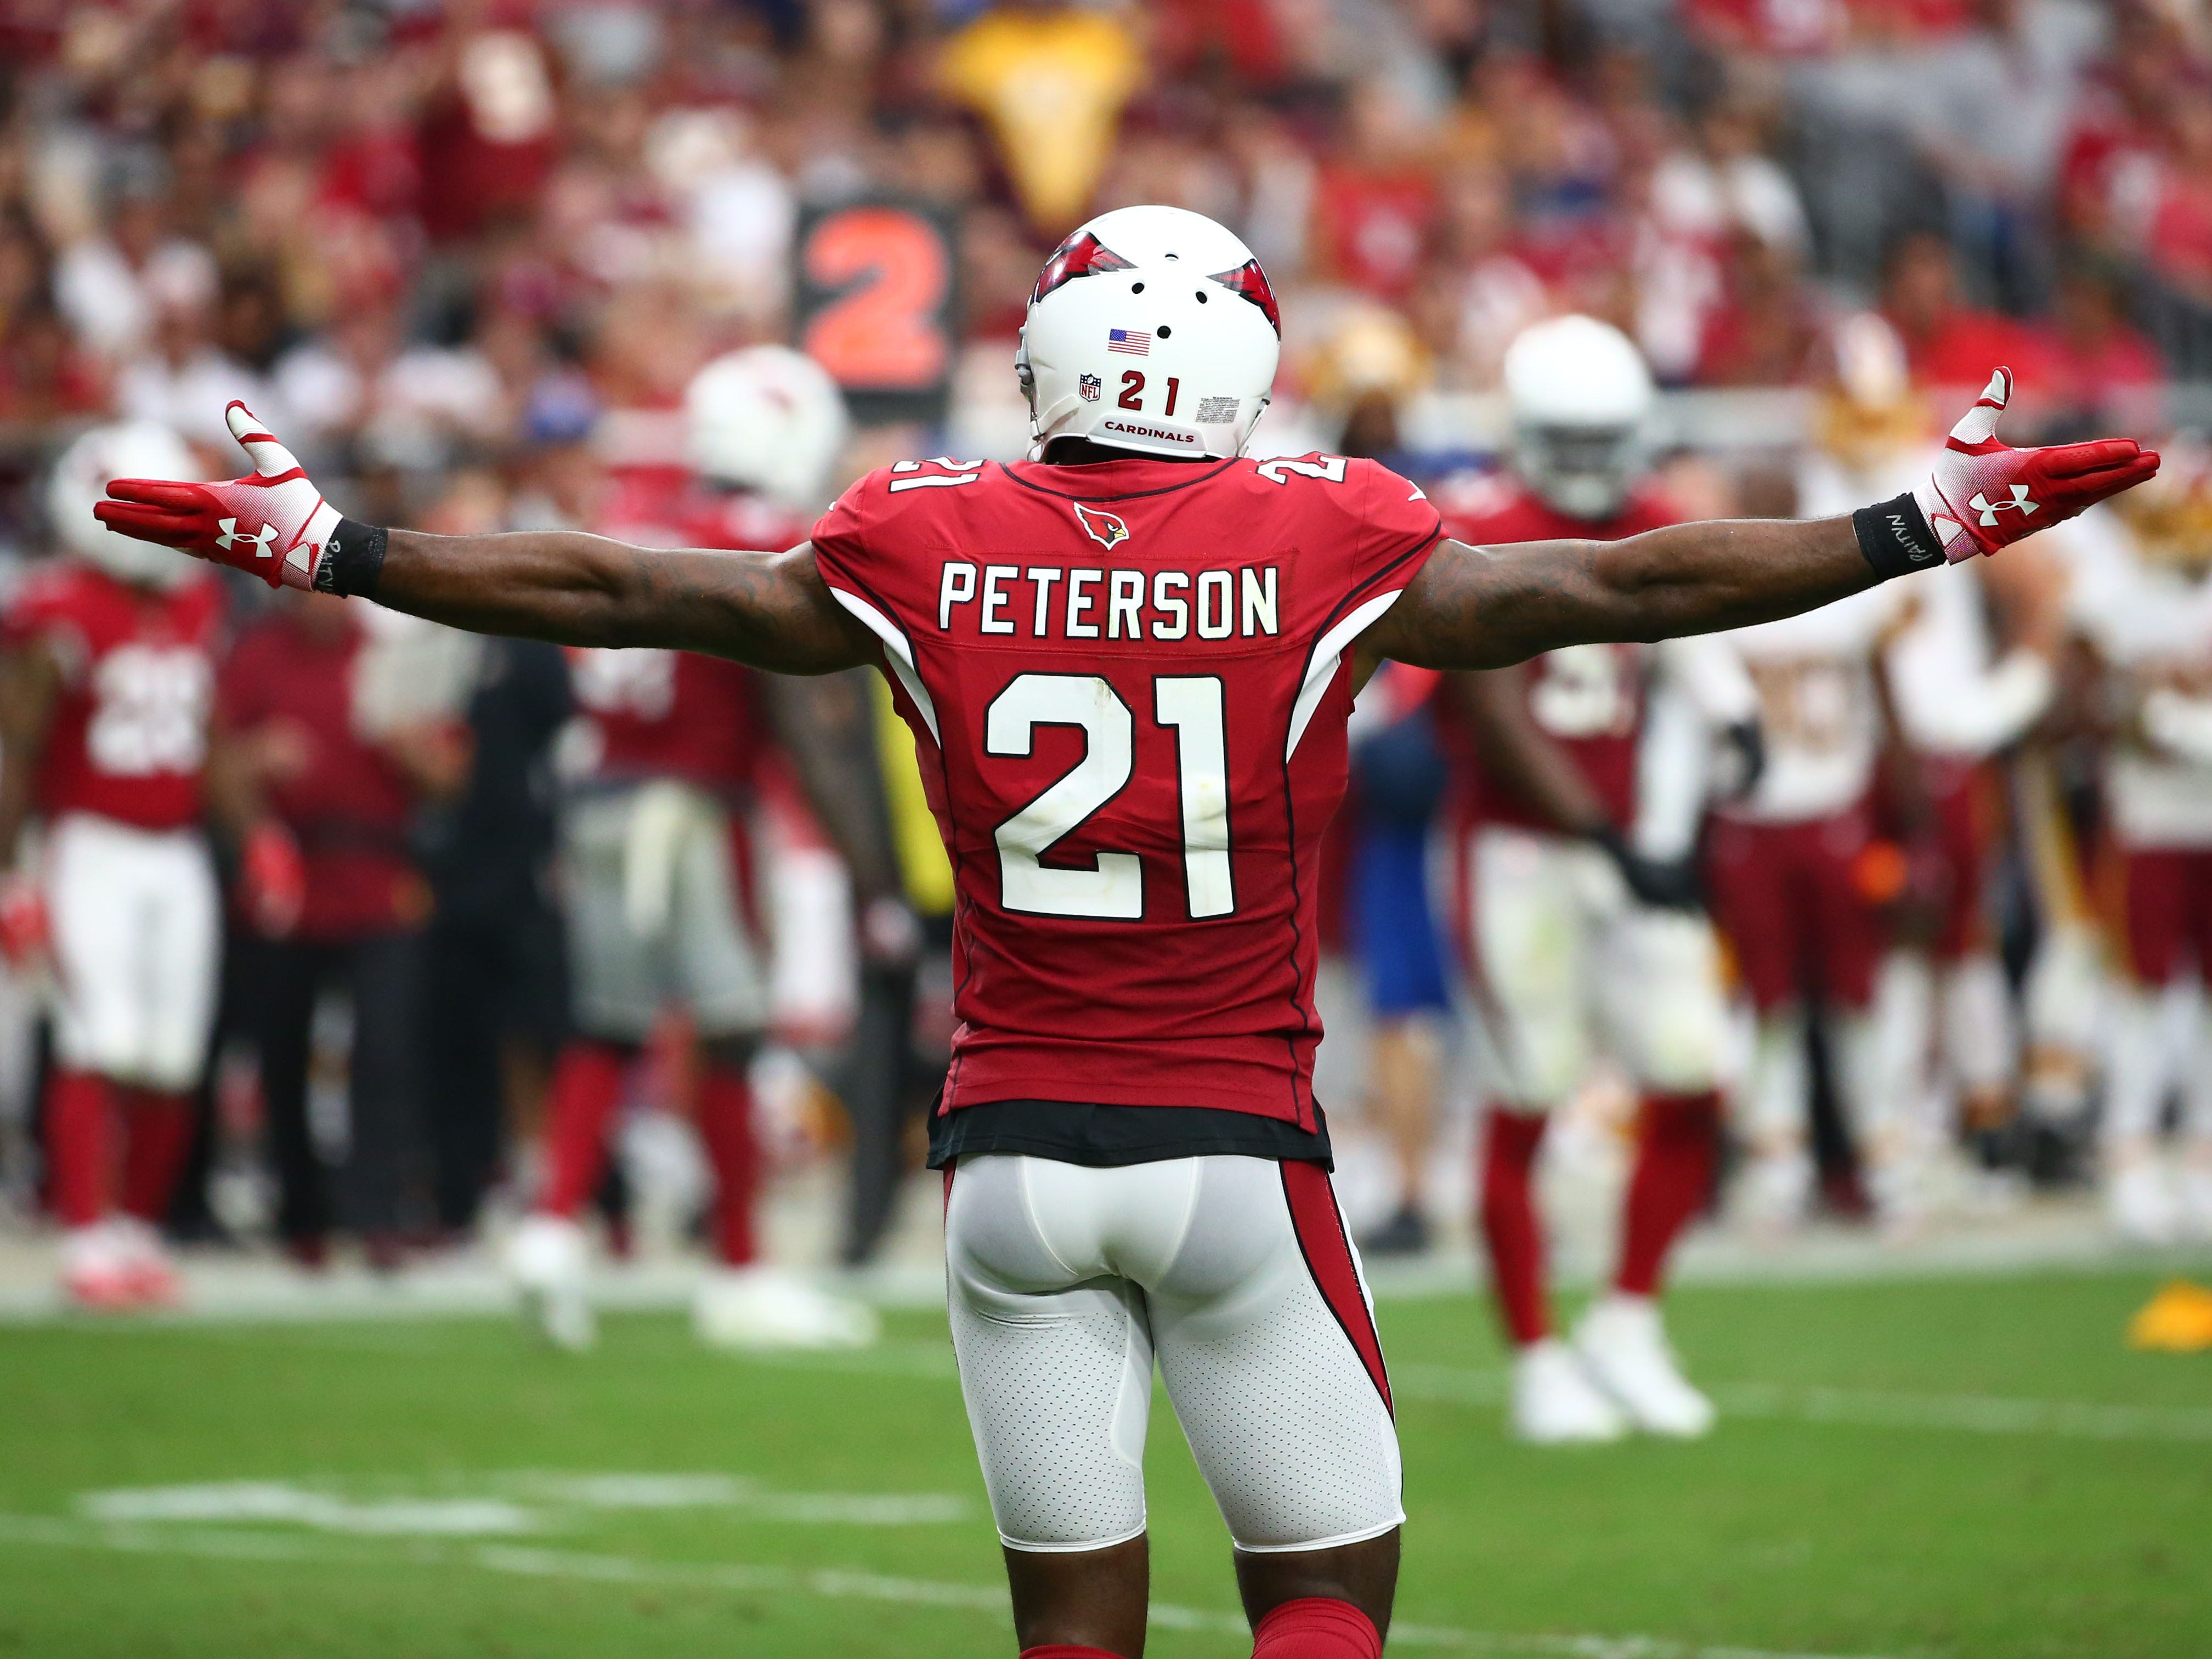 Arizona Cardinals Patrick Peterson reacts after a Cardinals pass interference call against the Washington Redskins in the second half at State Farm Stadium.